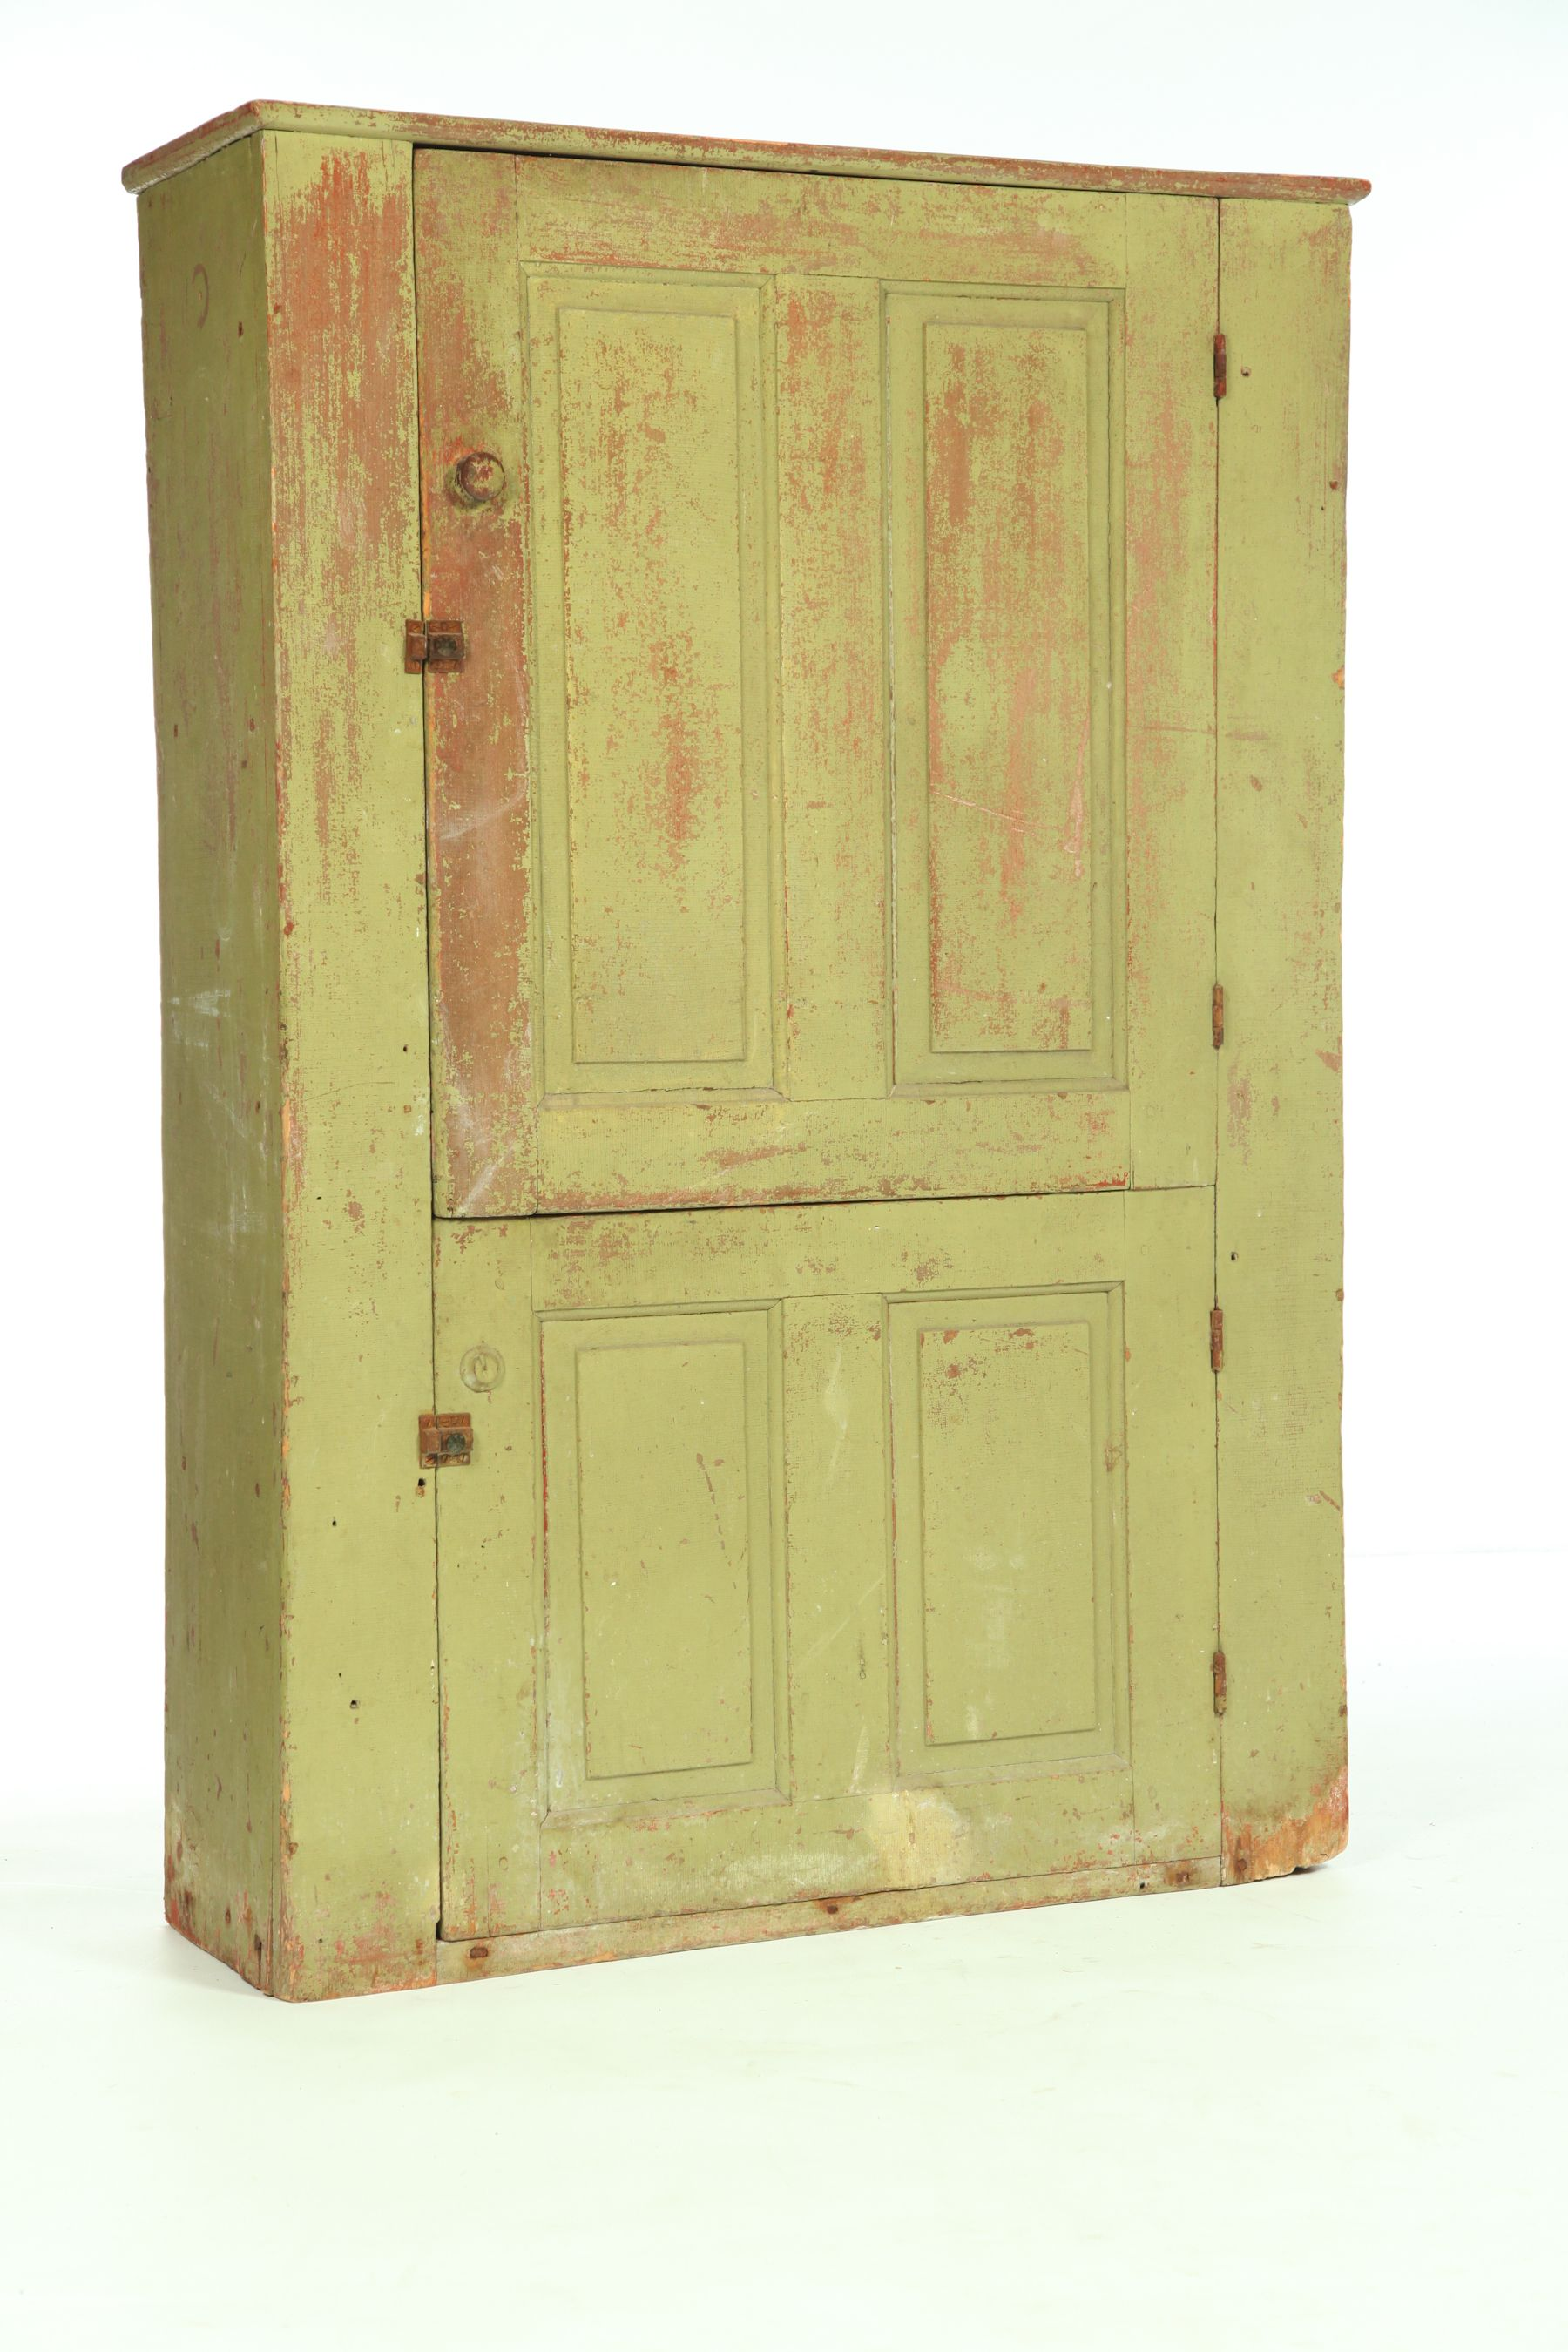 American 1st Half 19th Century Poplar Good Small Size With Four Raised Panel Doors And Old Green Paint Ove Raised Panel Doors Painted Furniture Raised Panel